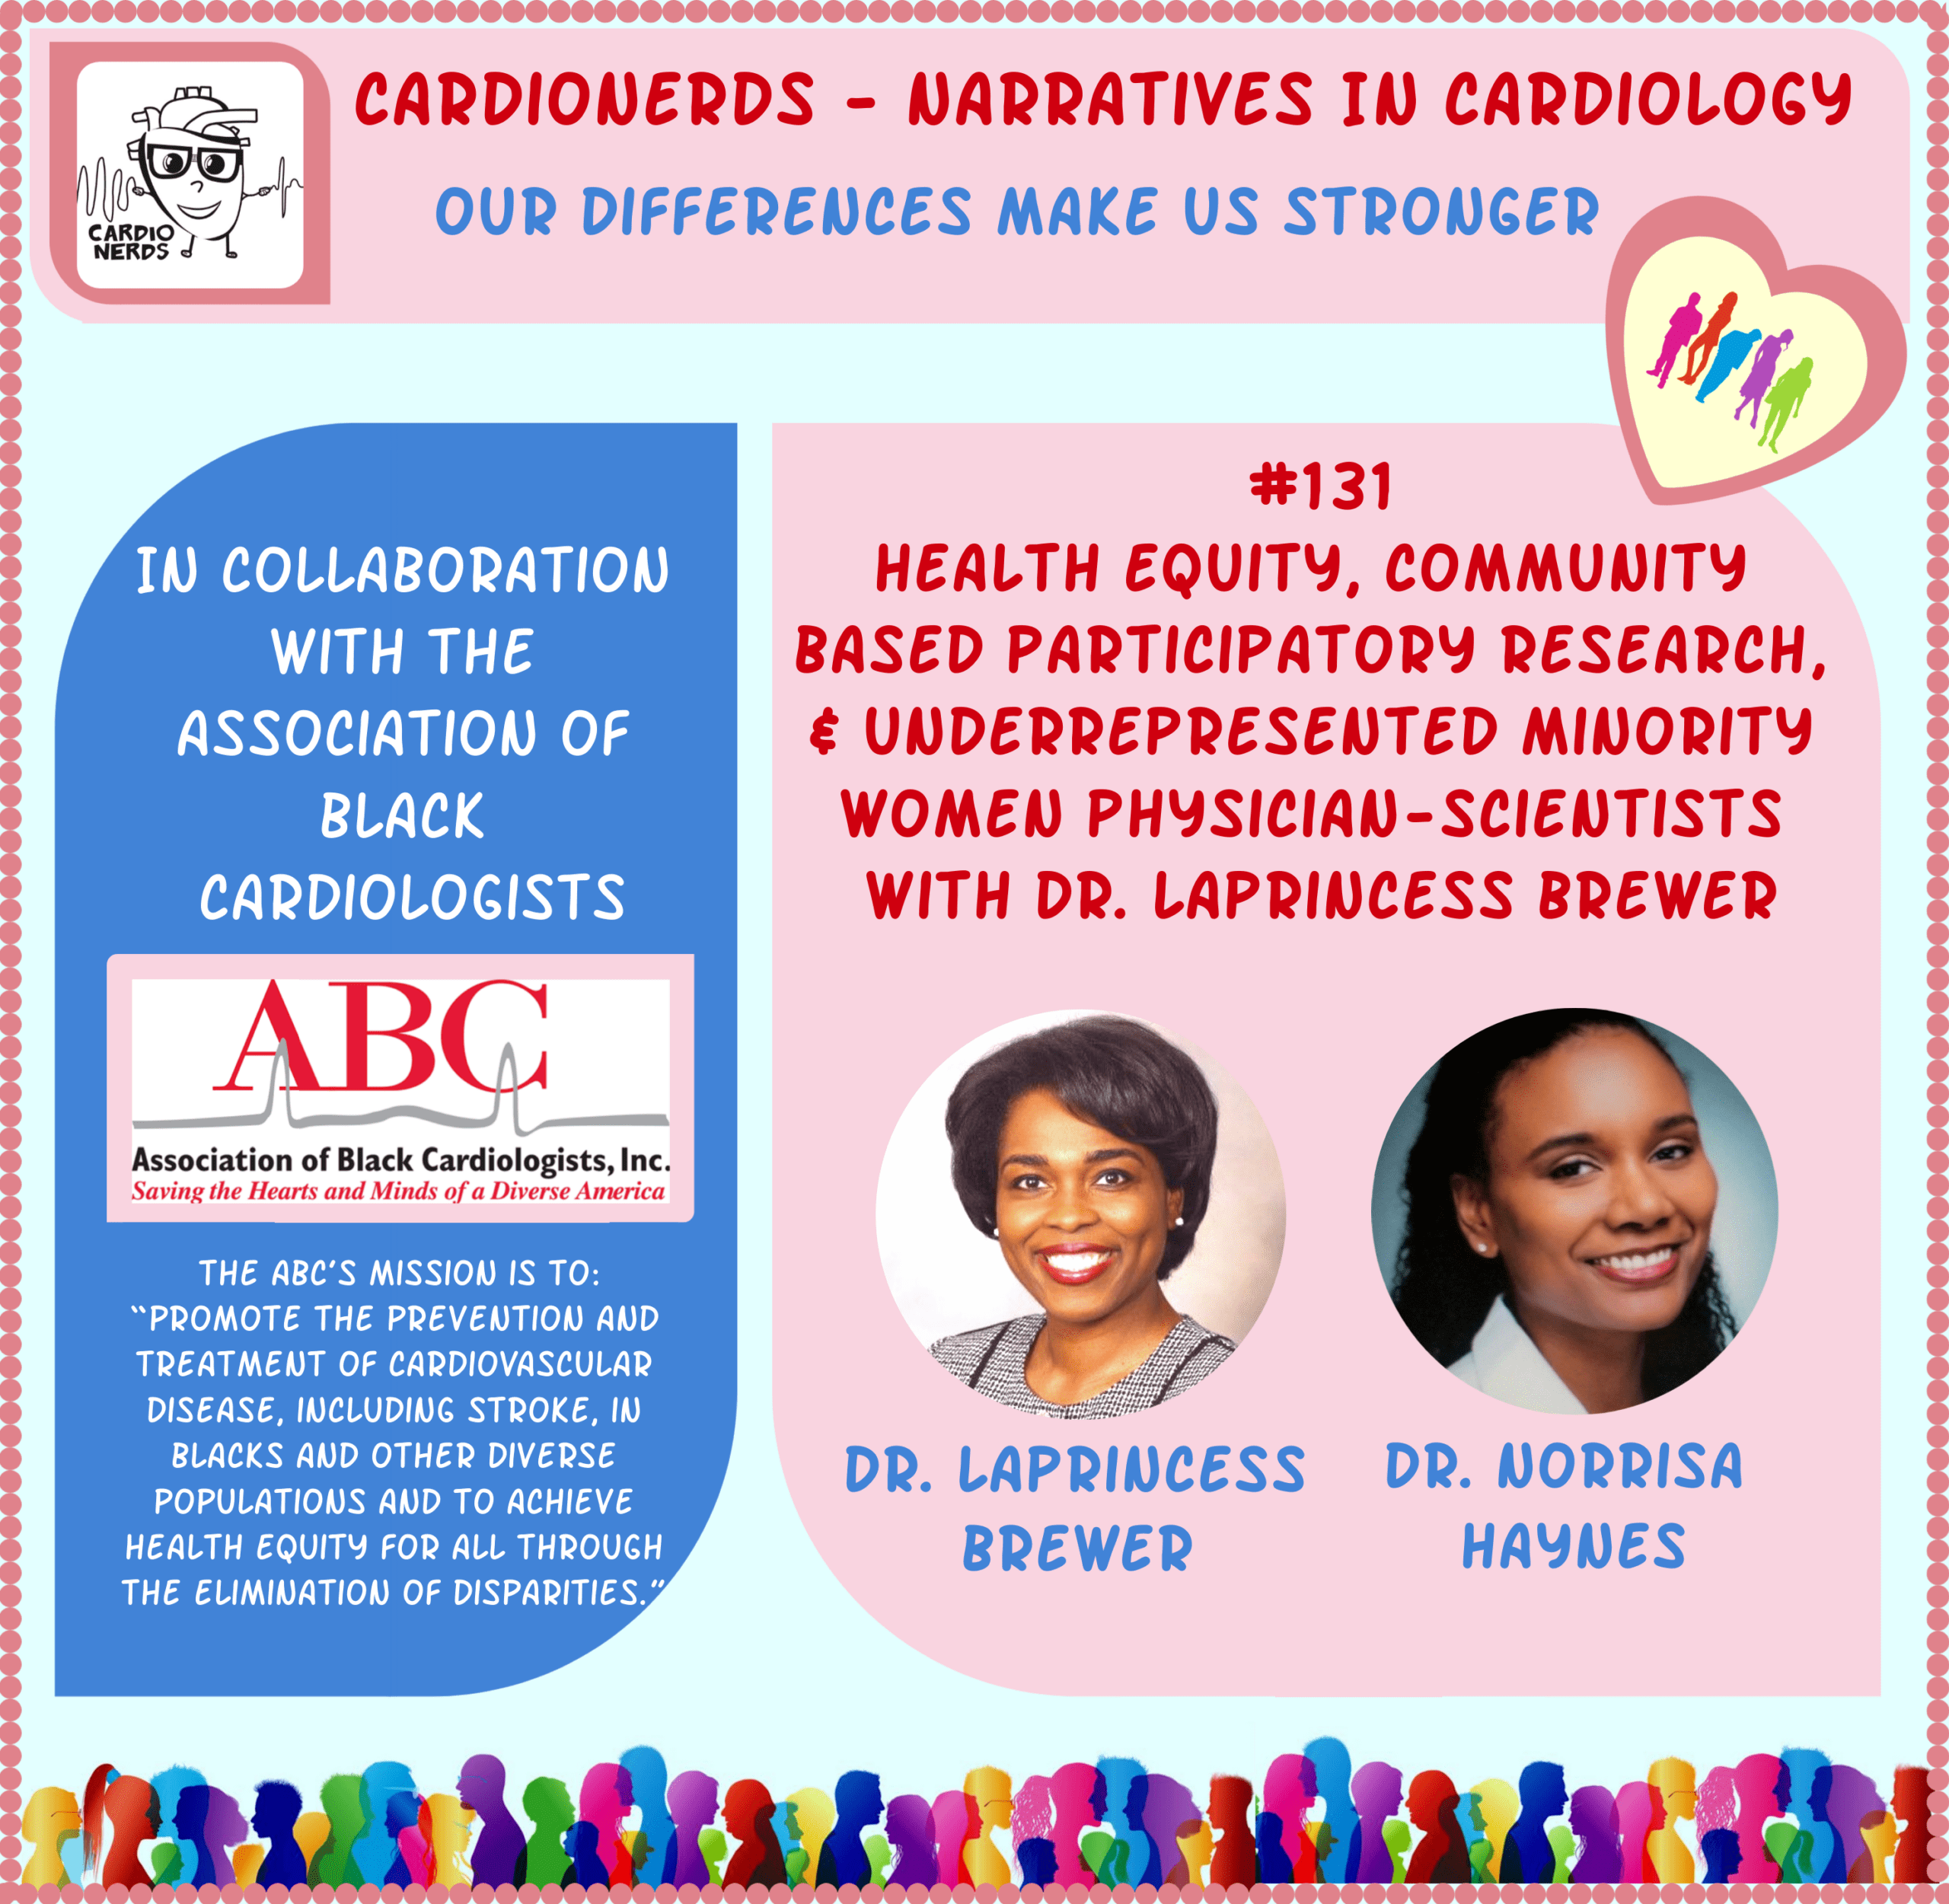 131. Narratives in Cardiology: Health Equity, Community Based Participatory Research, & Underrepresented Minority Women Physician-Scientists with Dr. LaPrincess Brewer